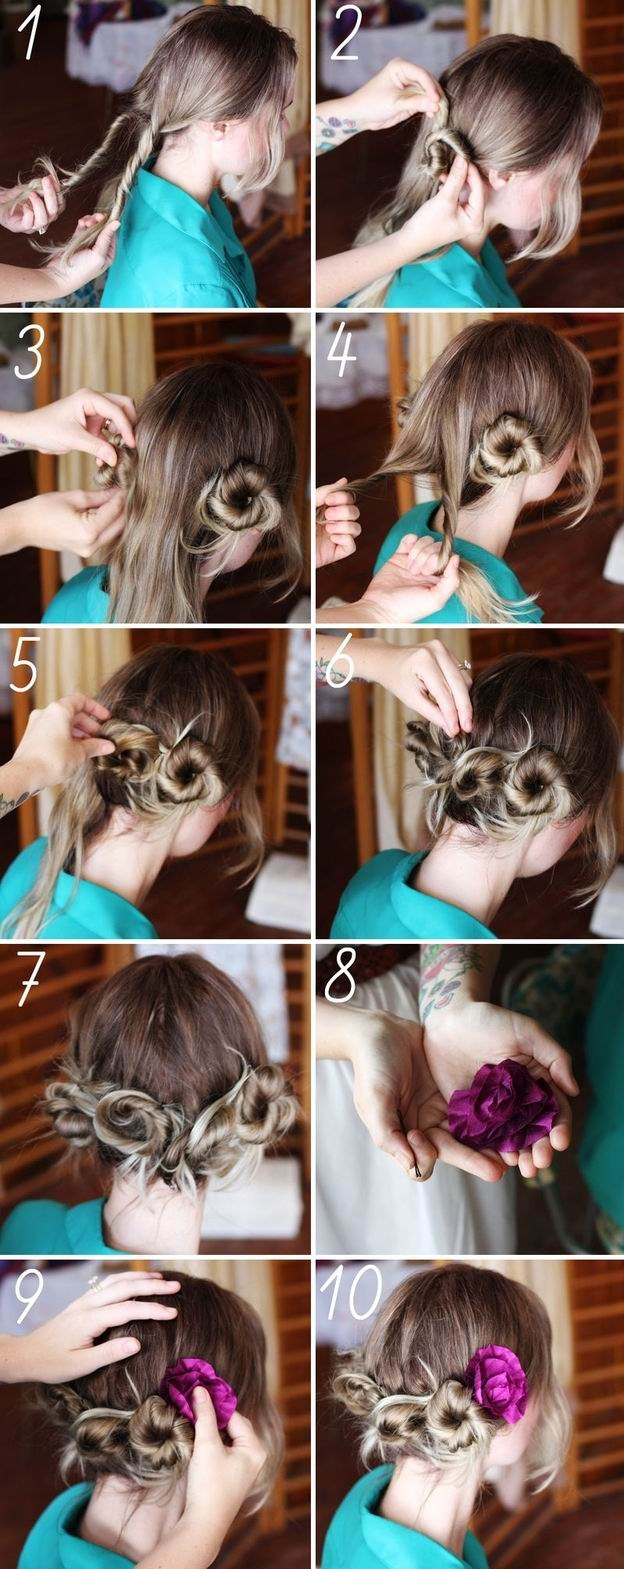 Hair Tutorial How to Create Twisty Buns